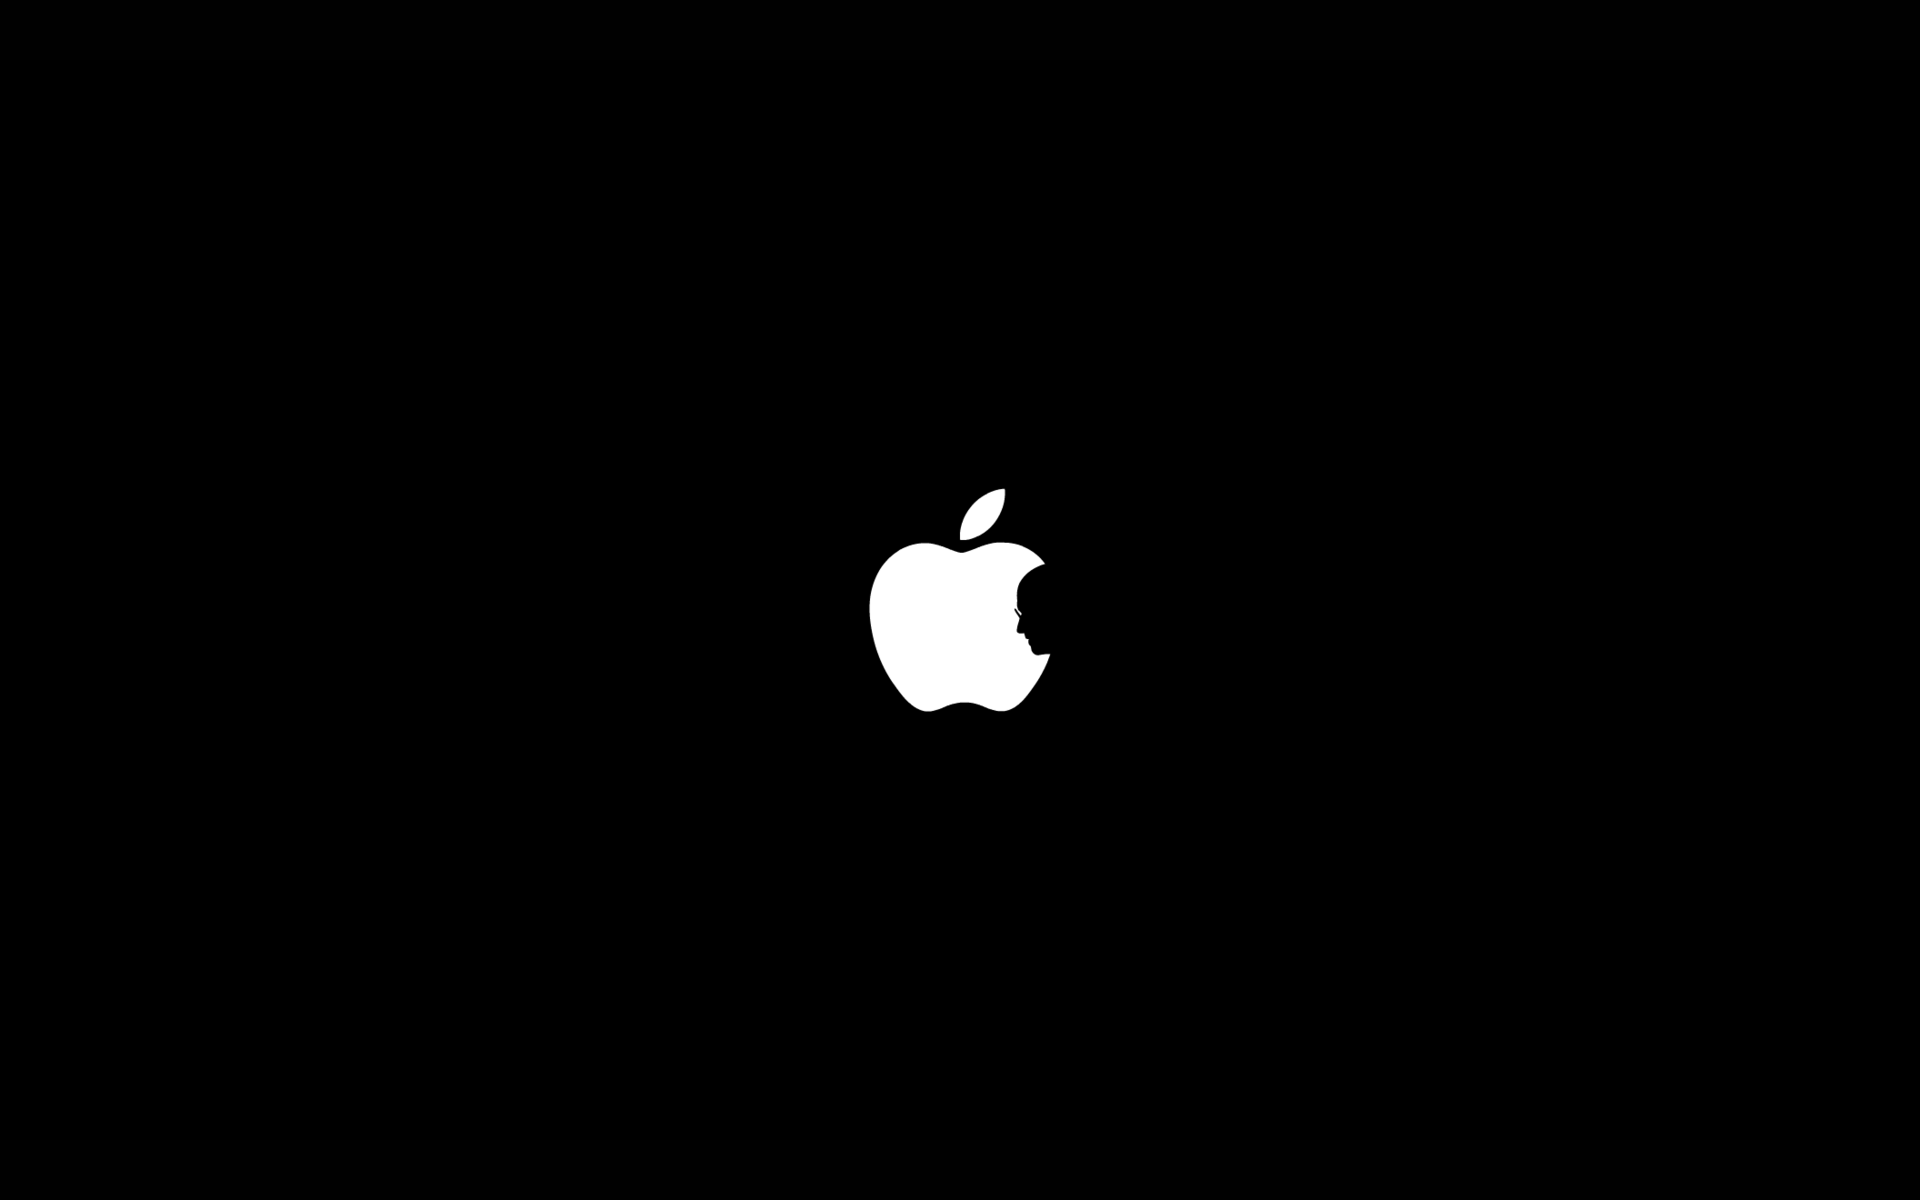 Apple Sign Wallpaper